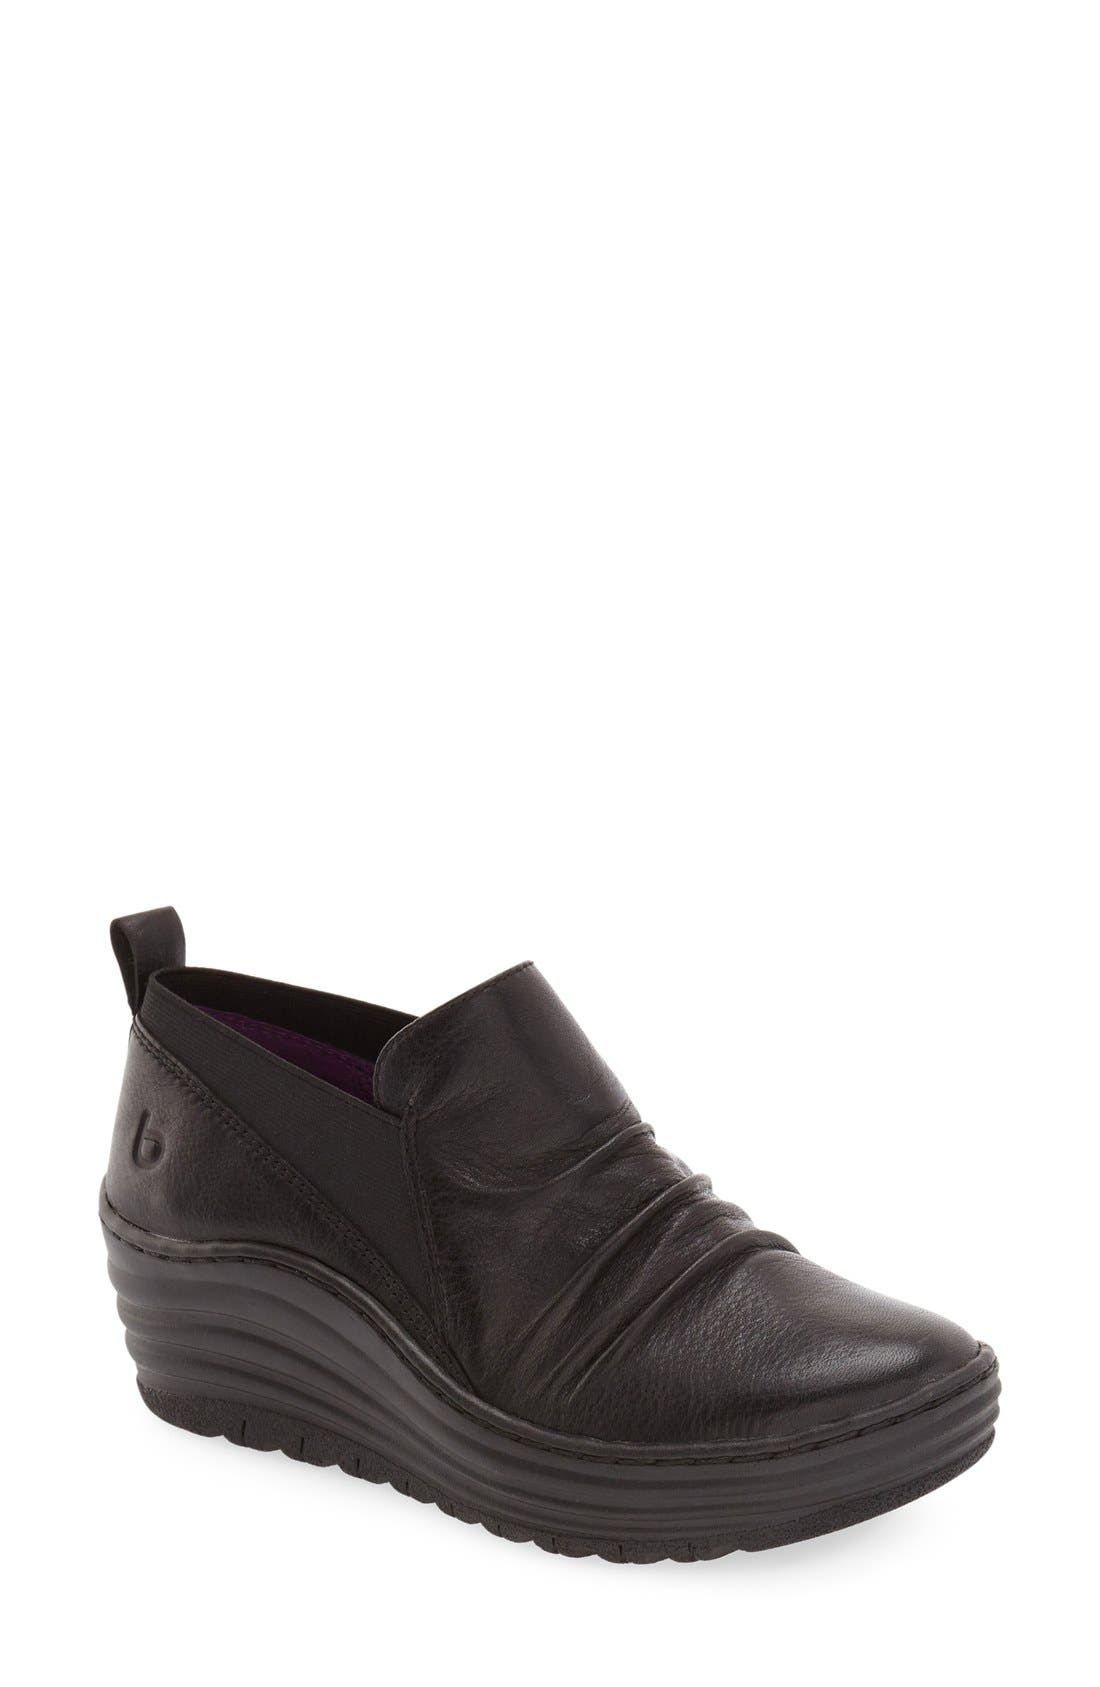 bionica 'Gallant' Leather Bootie (Women)